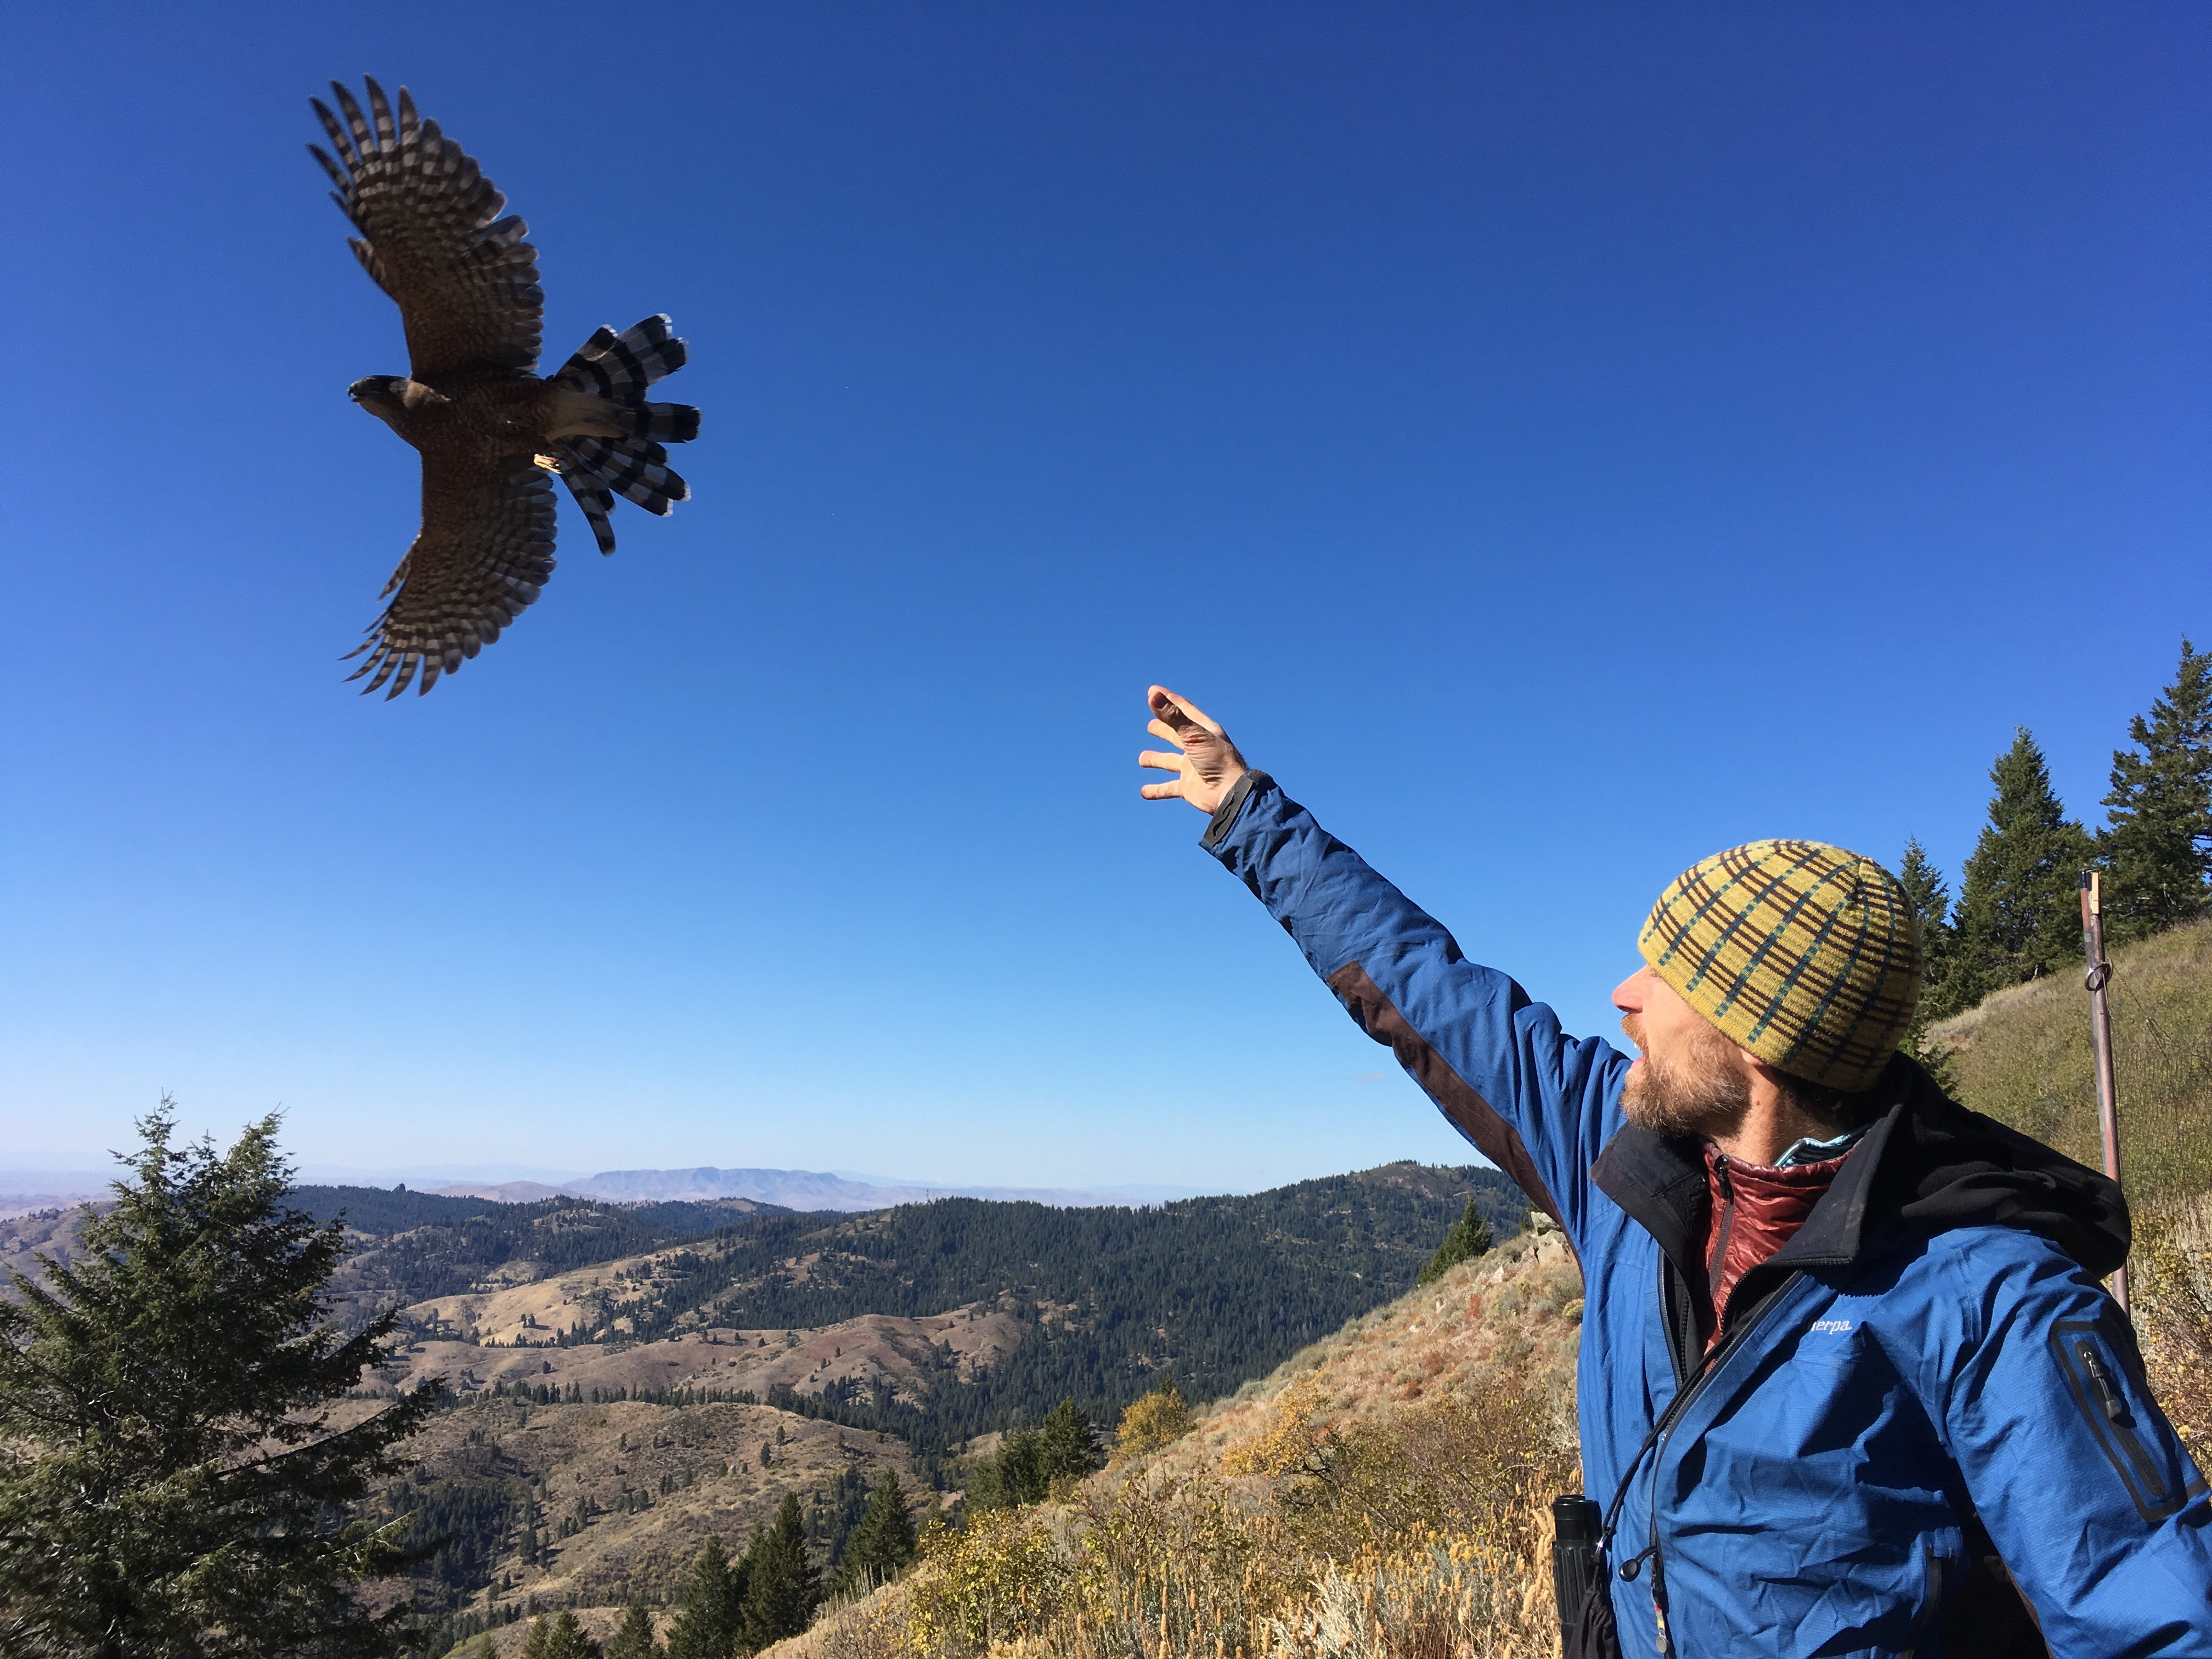 a biologist stands with arm raised and hand open with mountains in the background. A hawk in flight appears above his head